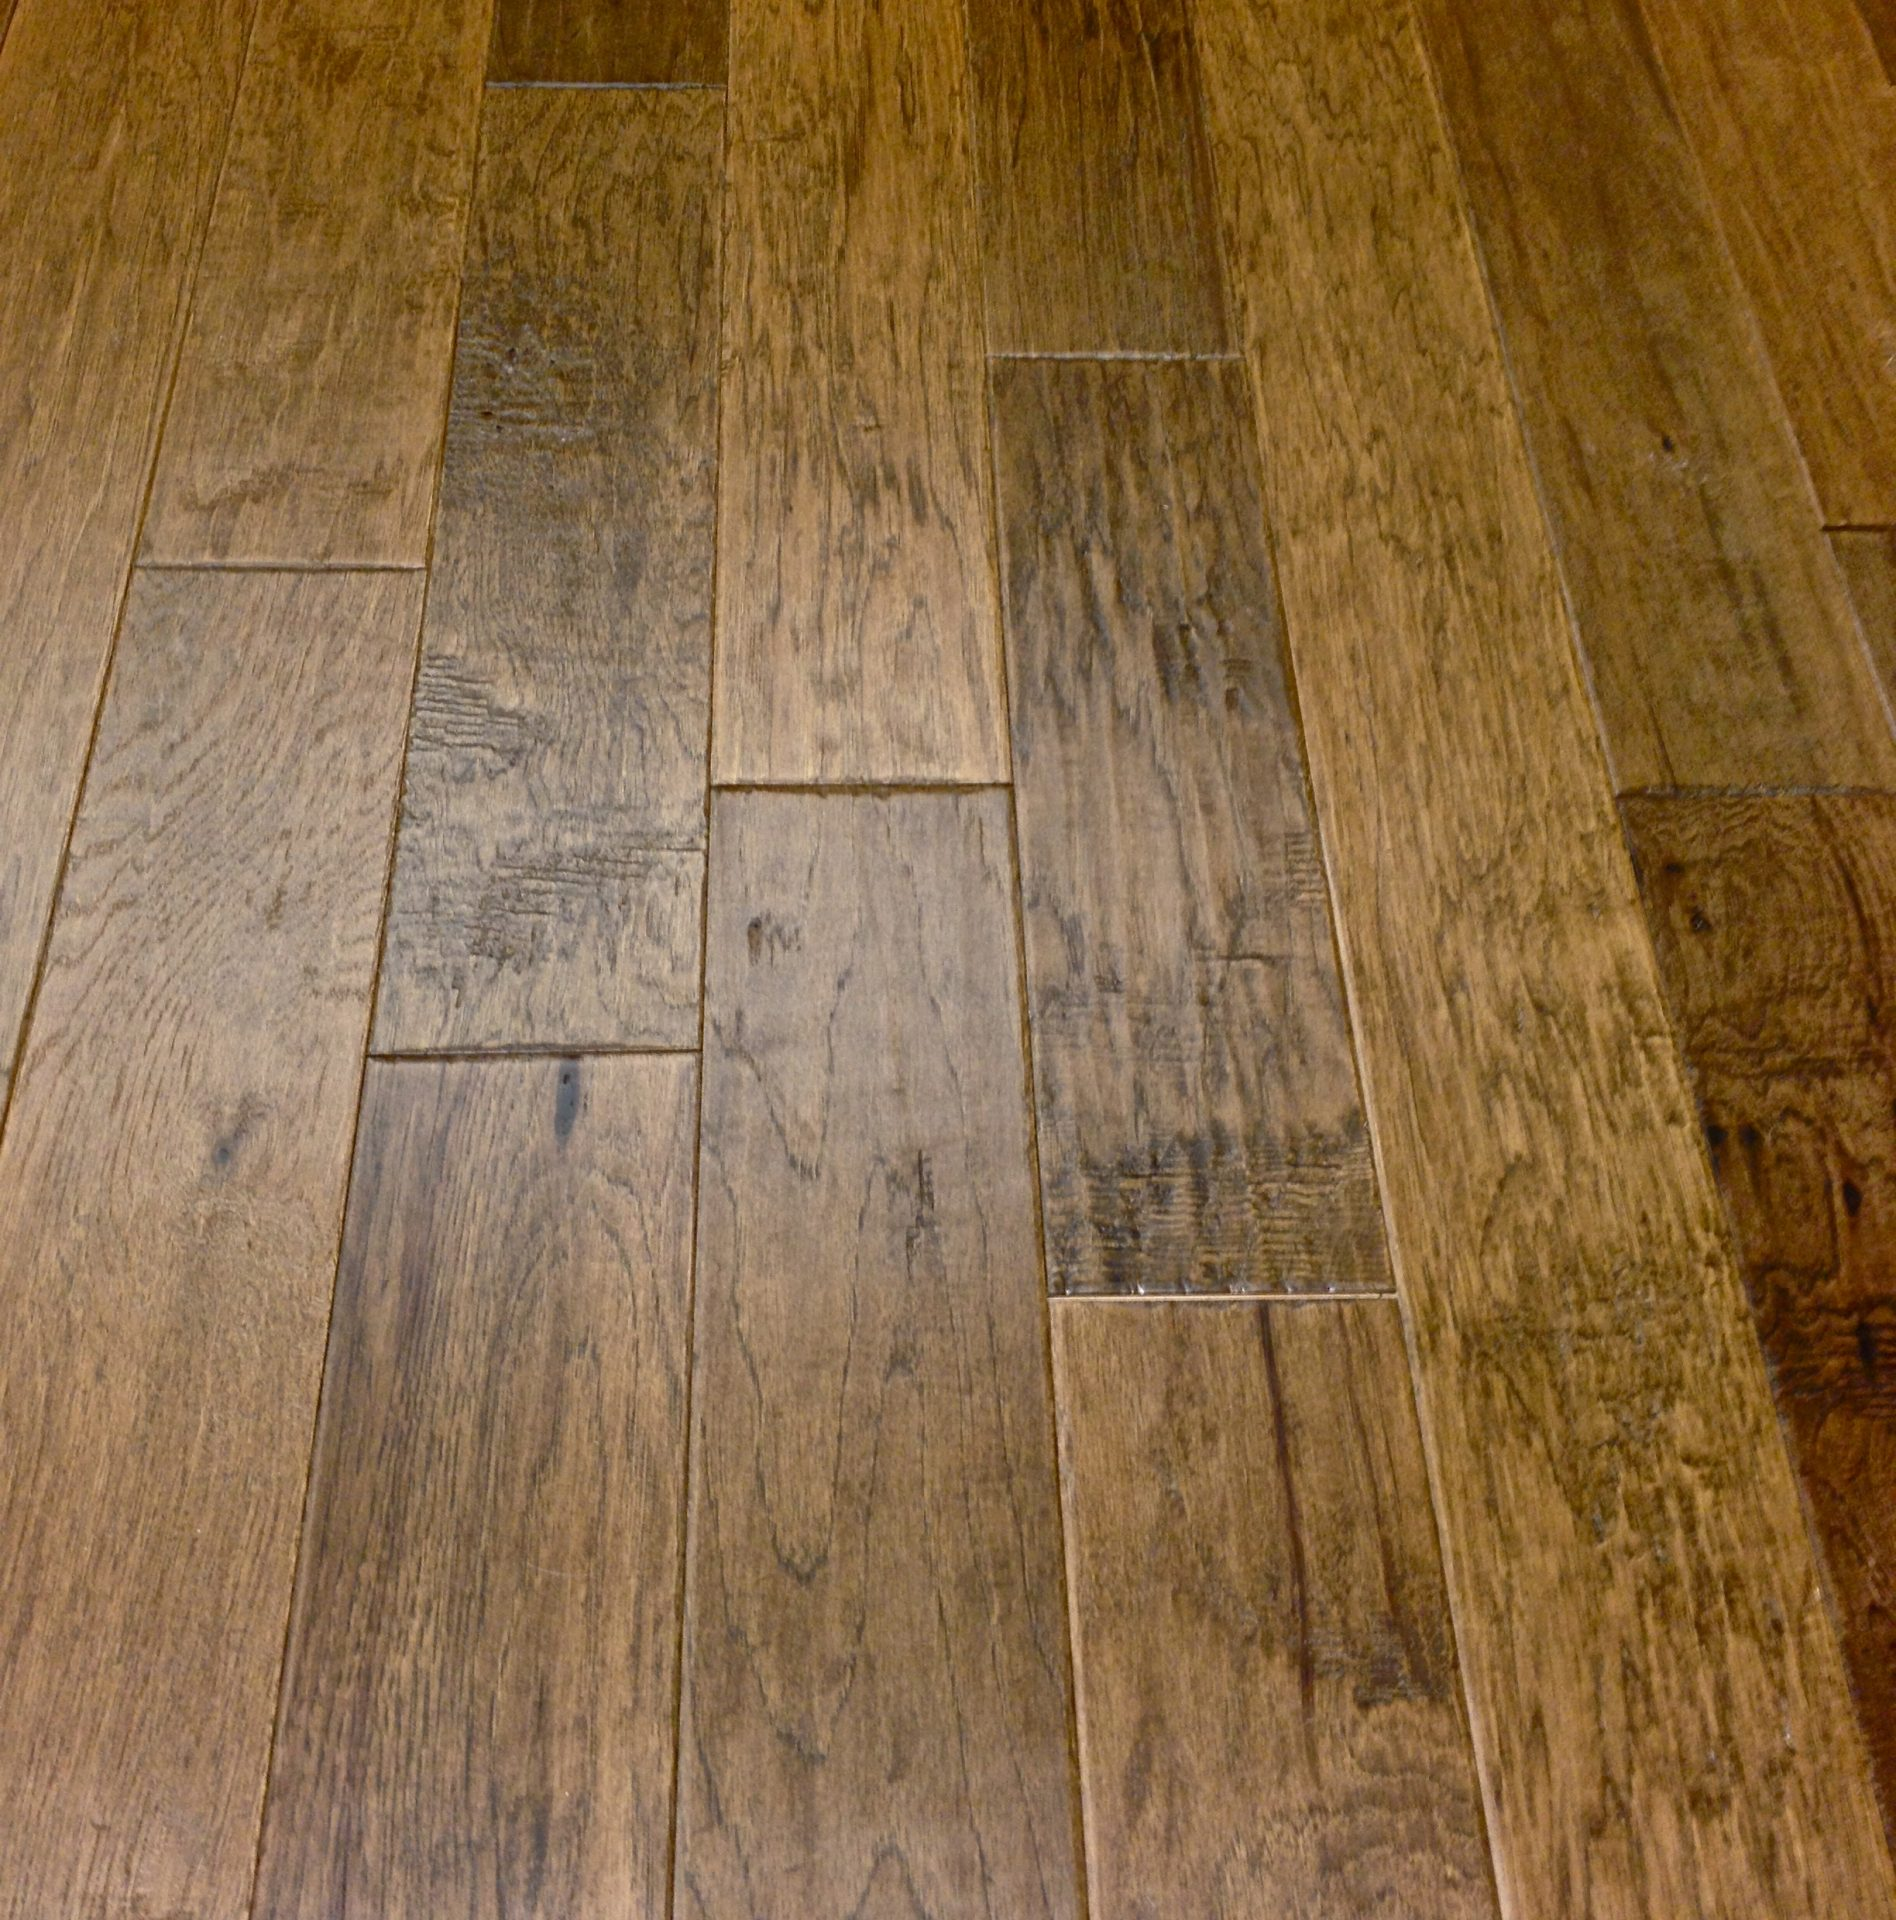 Engineered flooring for sale 2017 2018 2019 ford price for Engineered wood decking